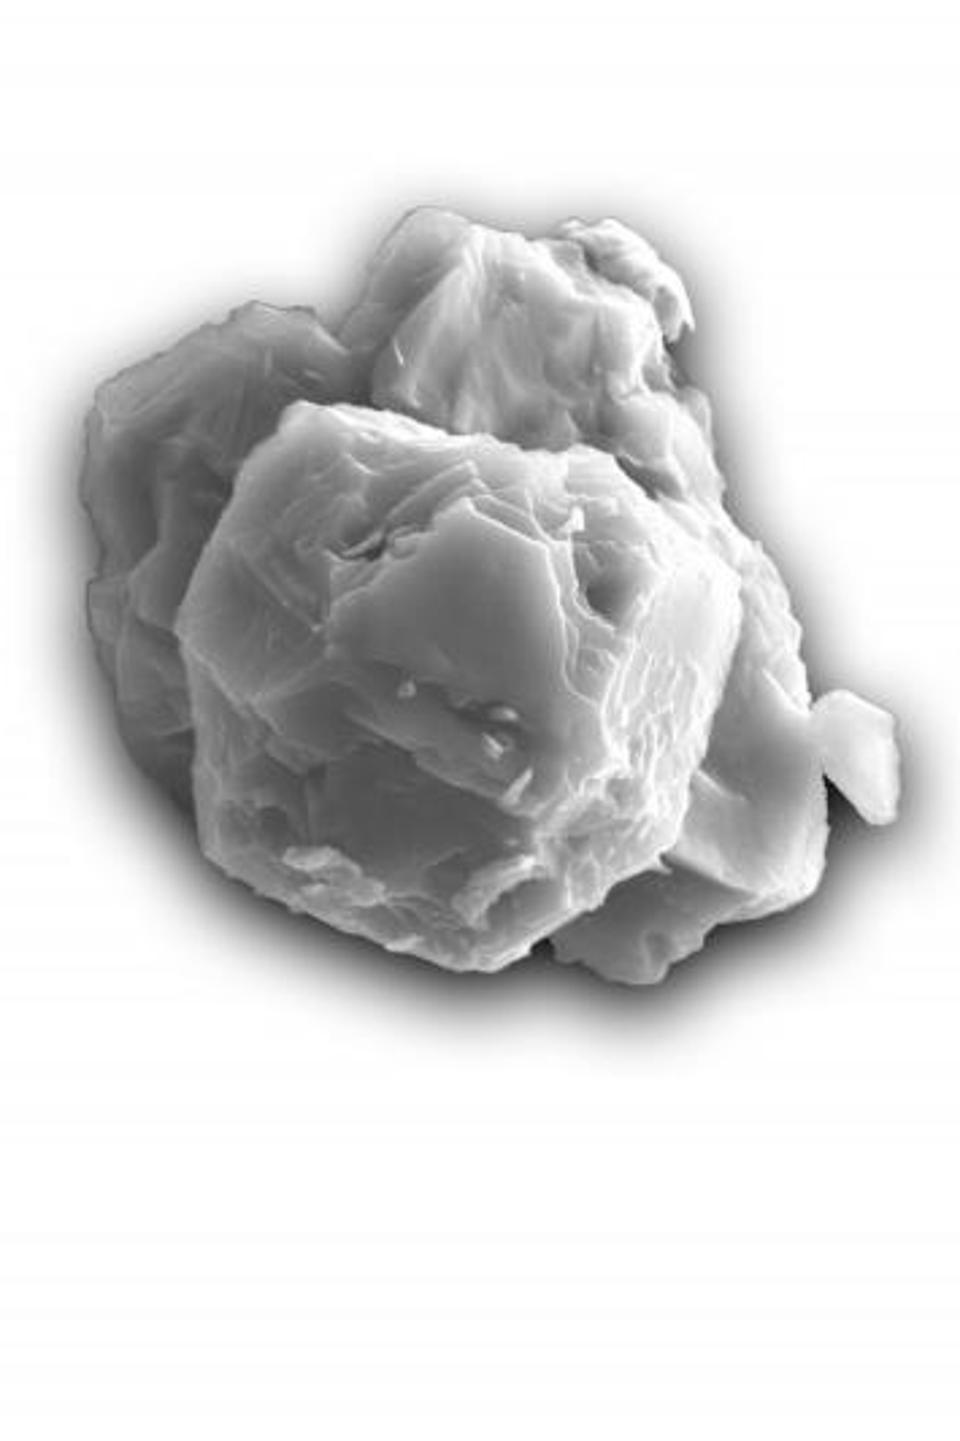 Scanning electron micrograph of a dated presolar silicon carbide grain. The grain is ~8 micrometers in its longest dimension.